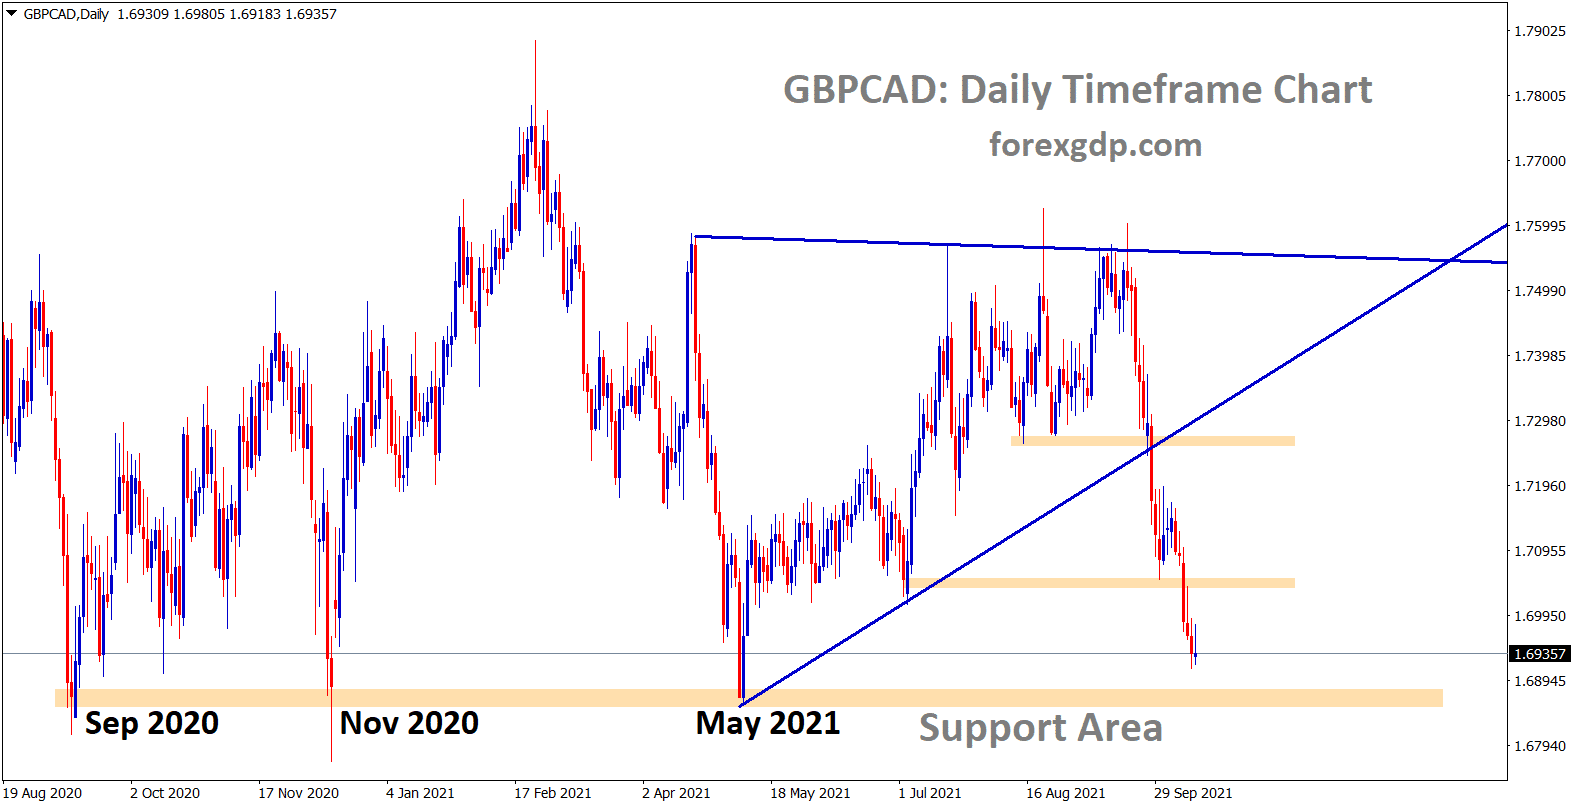 GBPCAD is going to reach the major support area